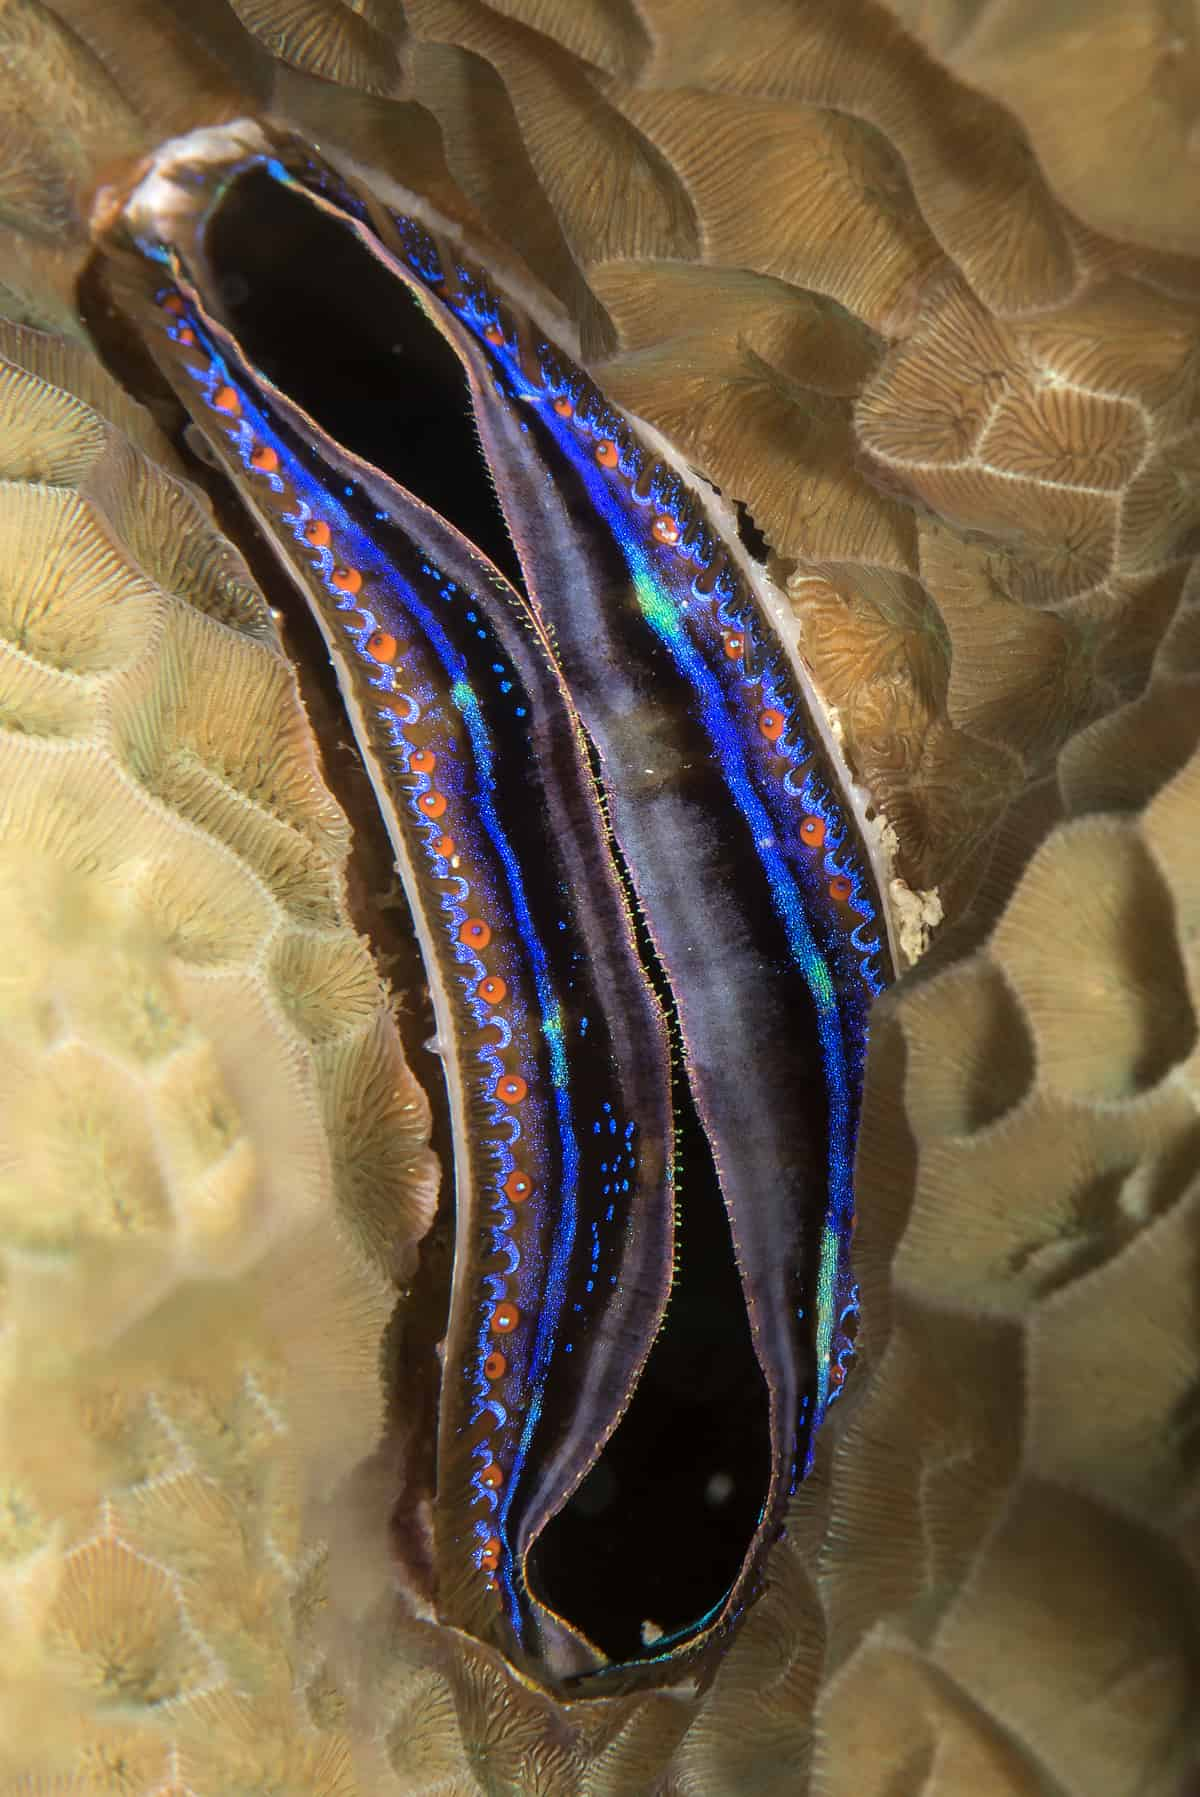 Iridescent scallop